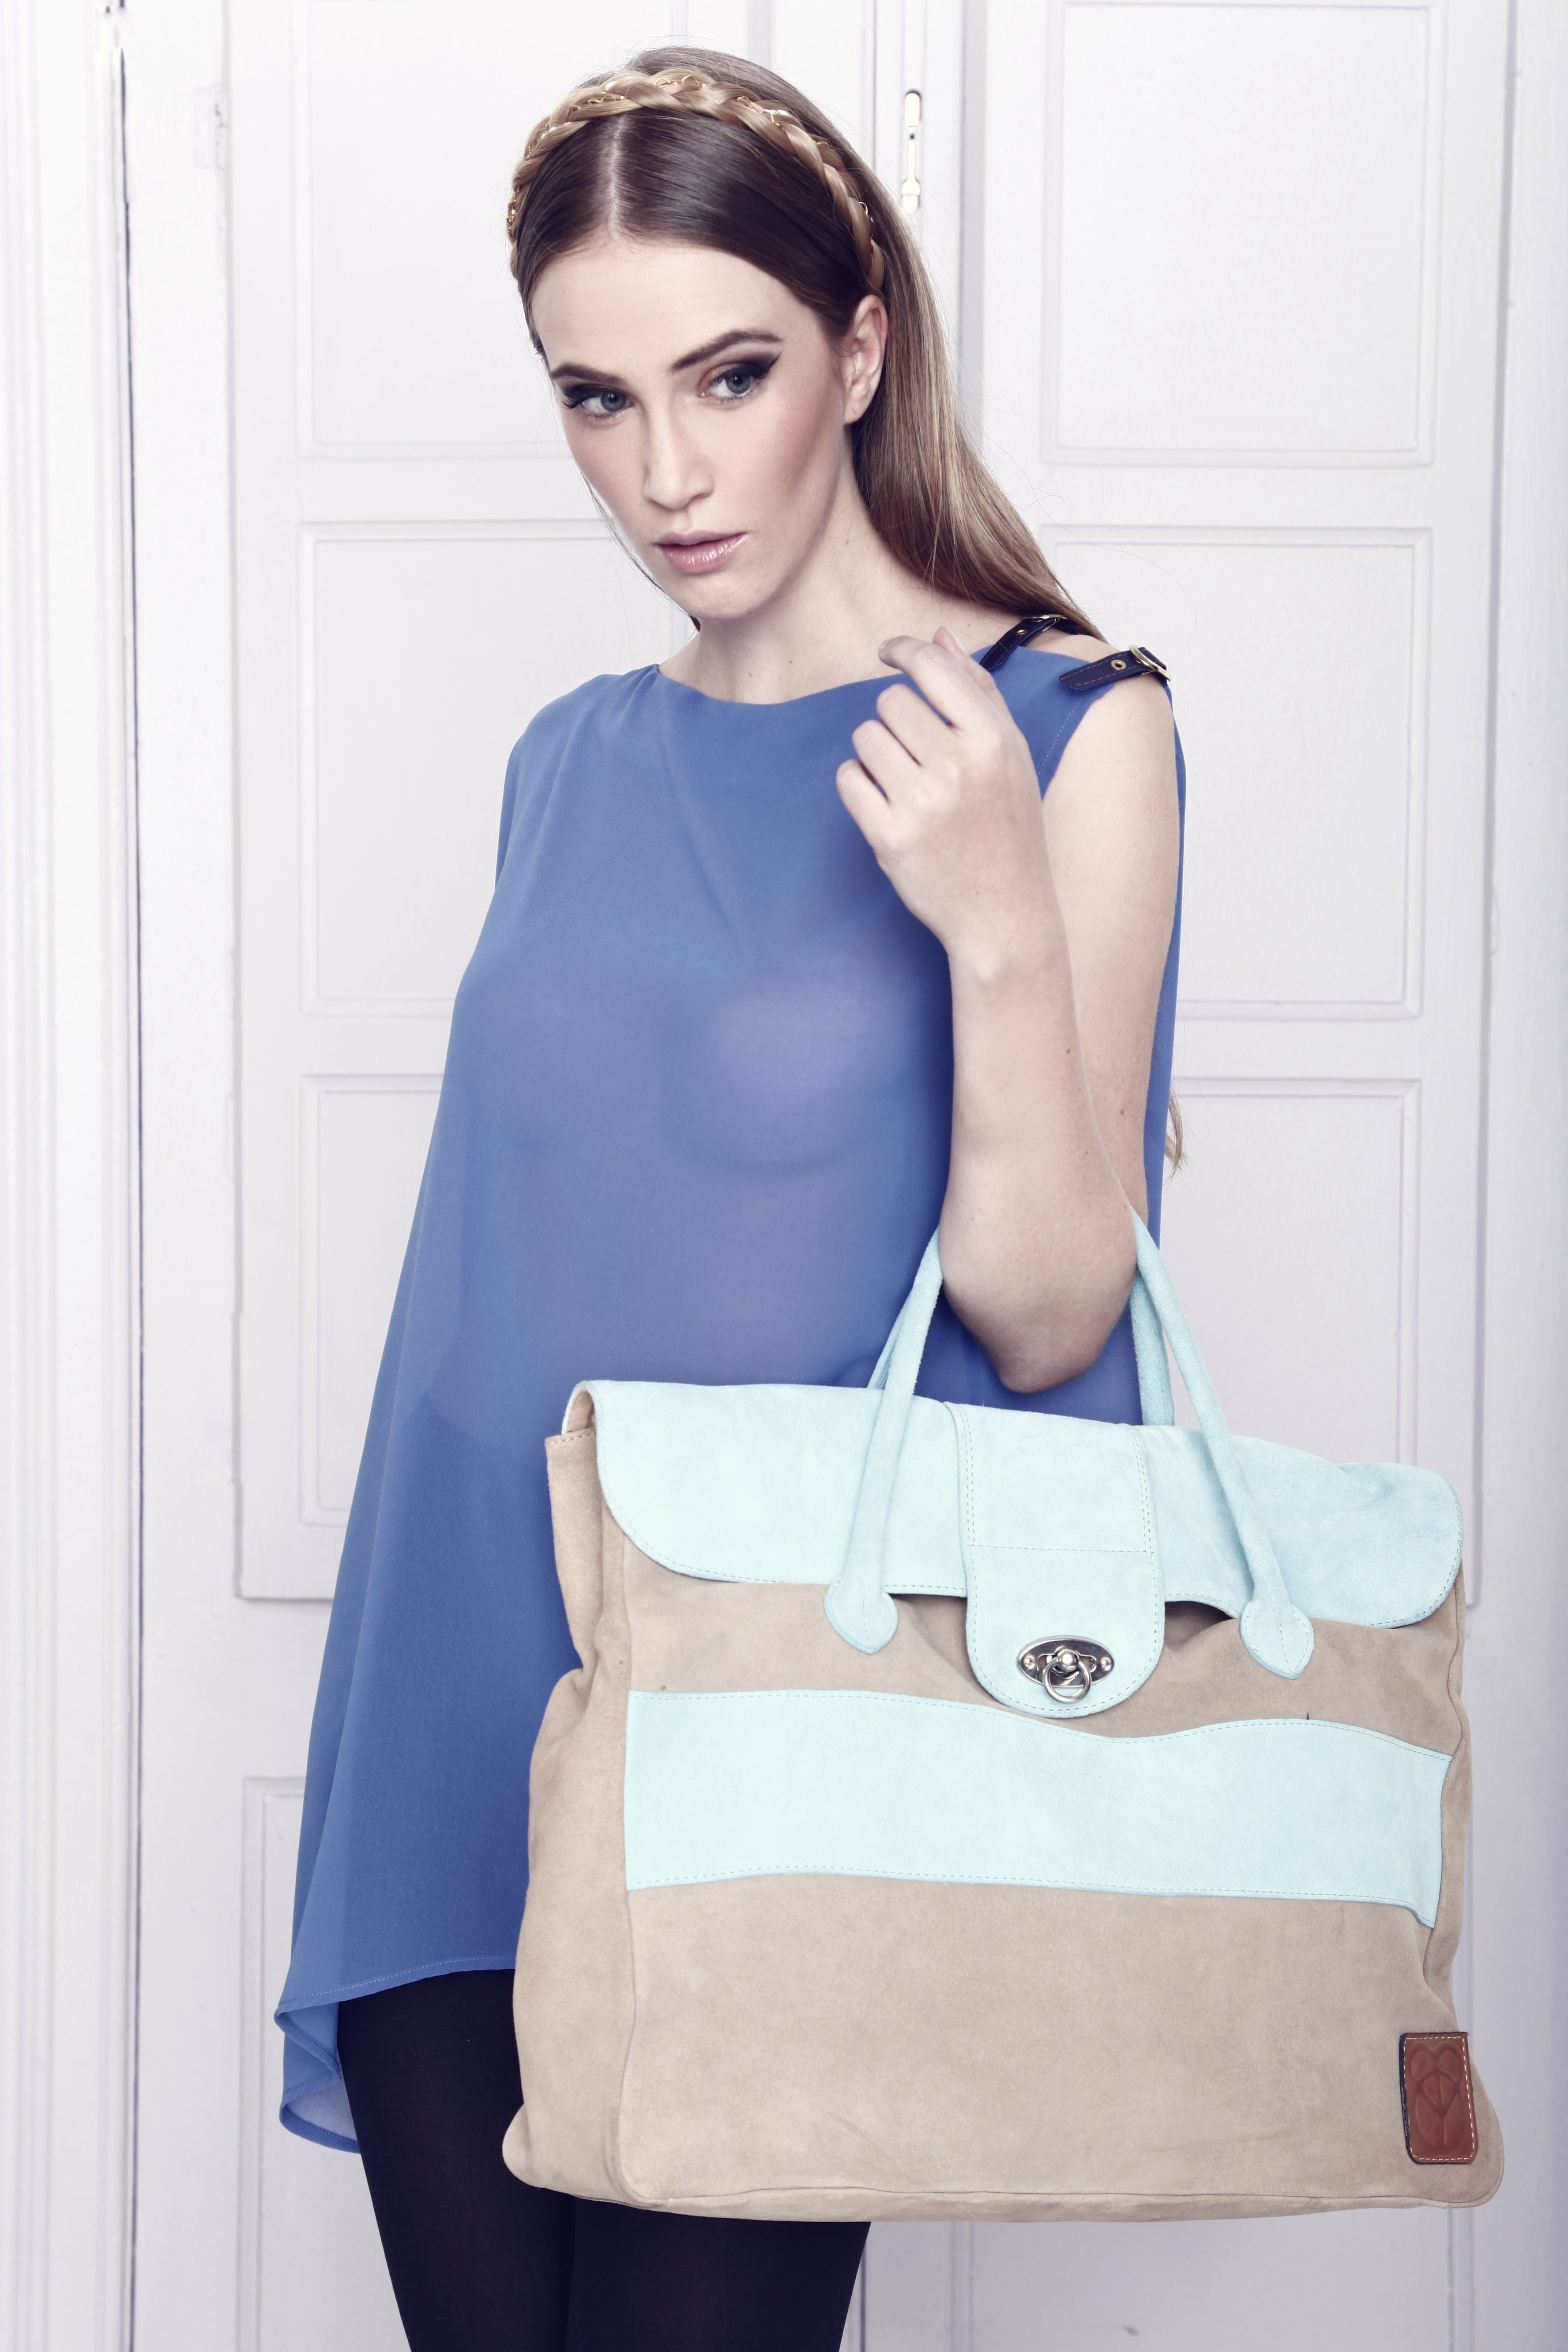 A/W 2013. Chiffon. and leather bag